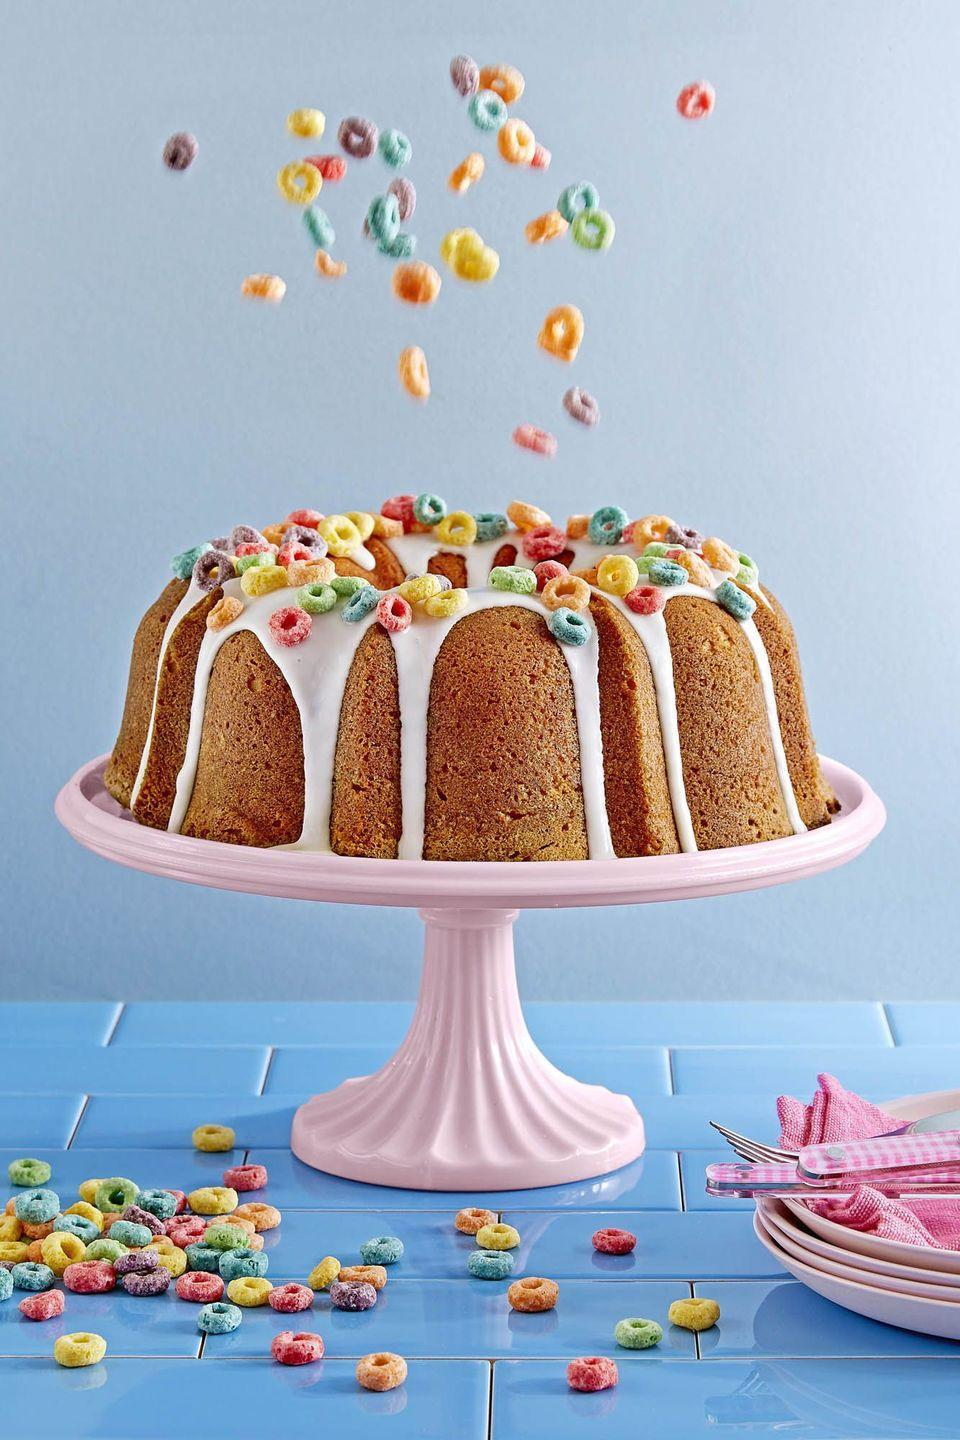 """<p>Trust us: Dad definitely won't turn down cake for breakfast. You won't either.</p><p><em><a href=""""https://www.countryliving.com/food-drinks/recipes/a46351/froot-loops-cake-recipe/"""" rel=""""nofollow noopener"""" target=""""_blank"""" data-ylk=""""slk:Get the recipe from Country Living »"""" class=""""link rapid-noclick-resp"""">Get the recipe from Country Living »</a></em></p>"""